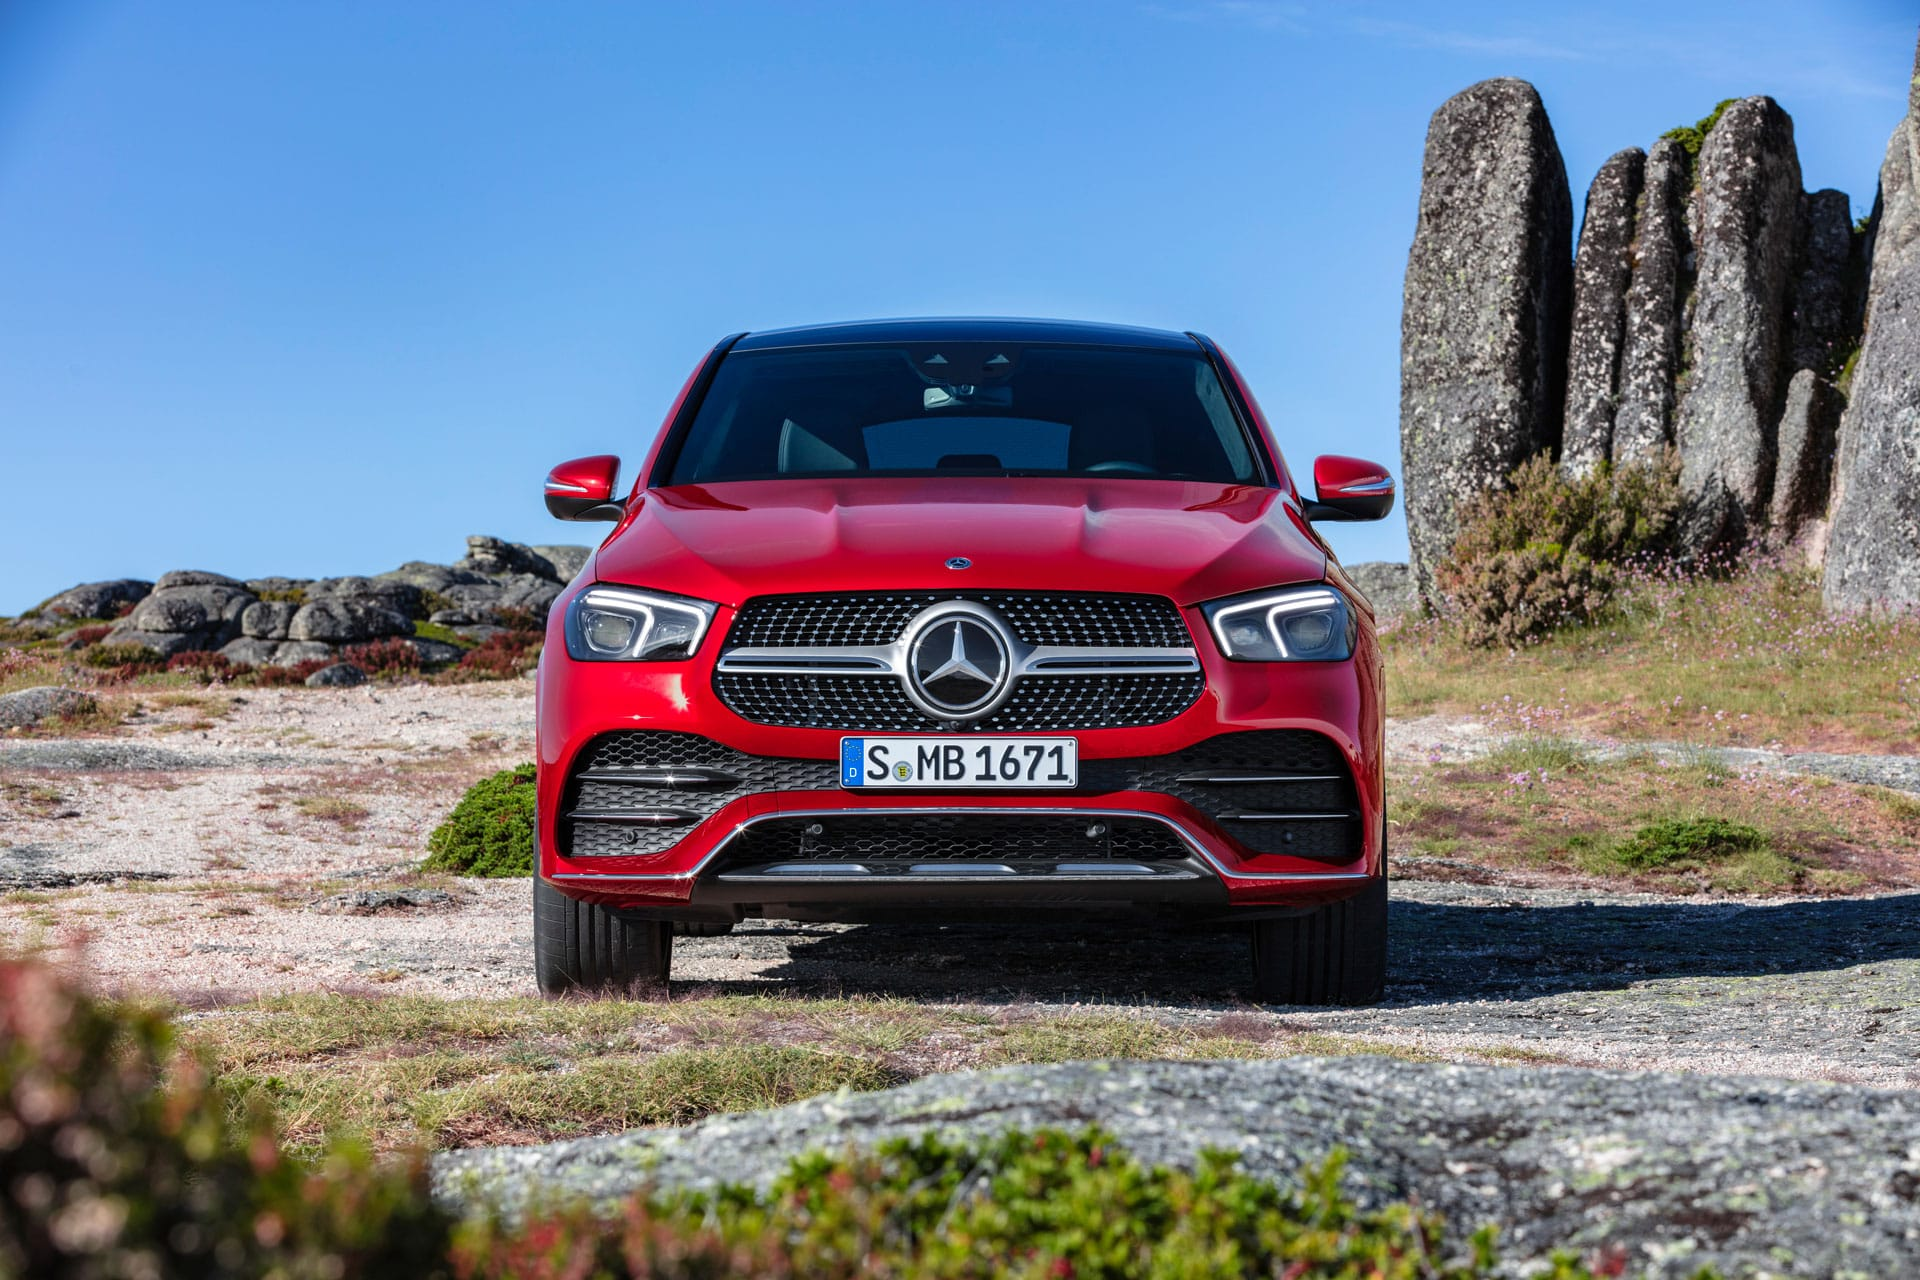 Автомобиль Mercedes-Benz GLE Coupe 2020 вид спереди